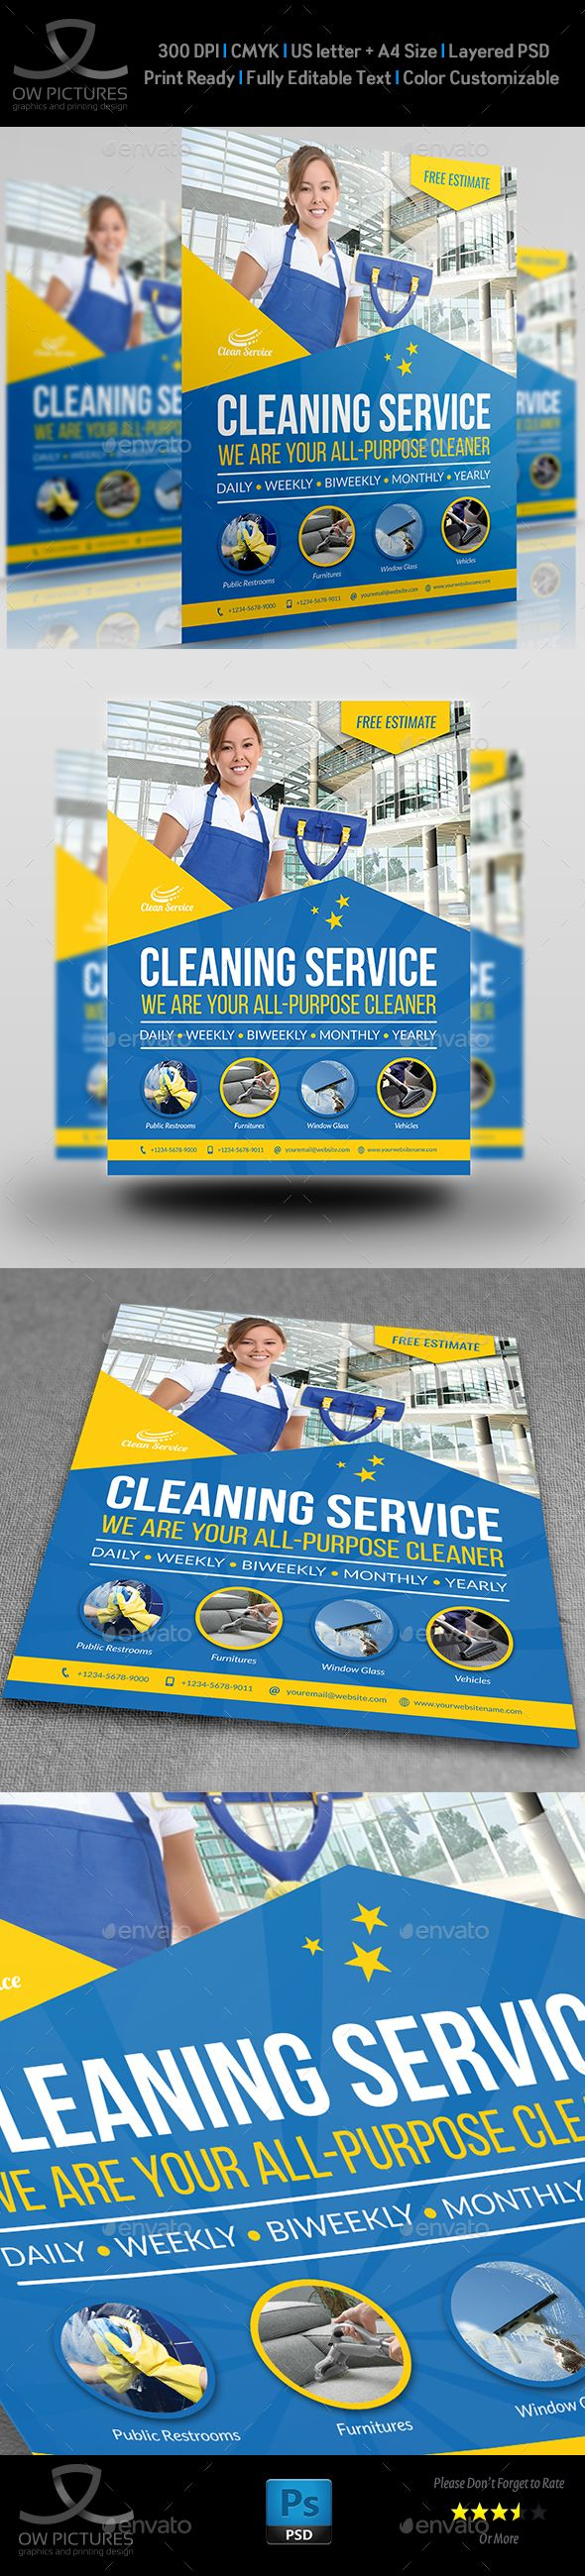 Cleaning Services Flyer Template Vol.4   Cleaning service, Flyer ...